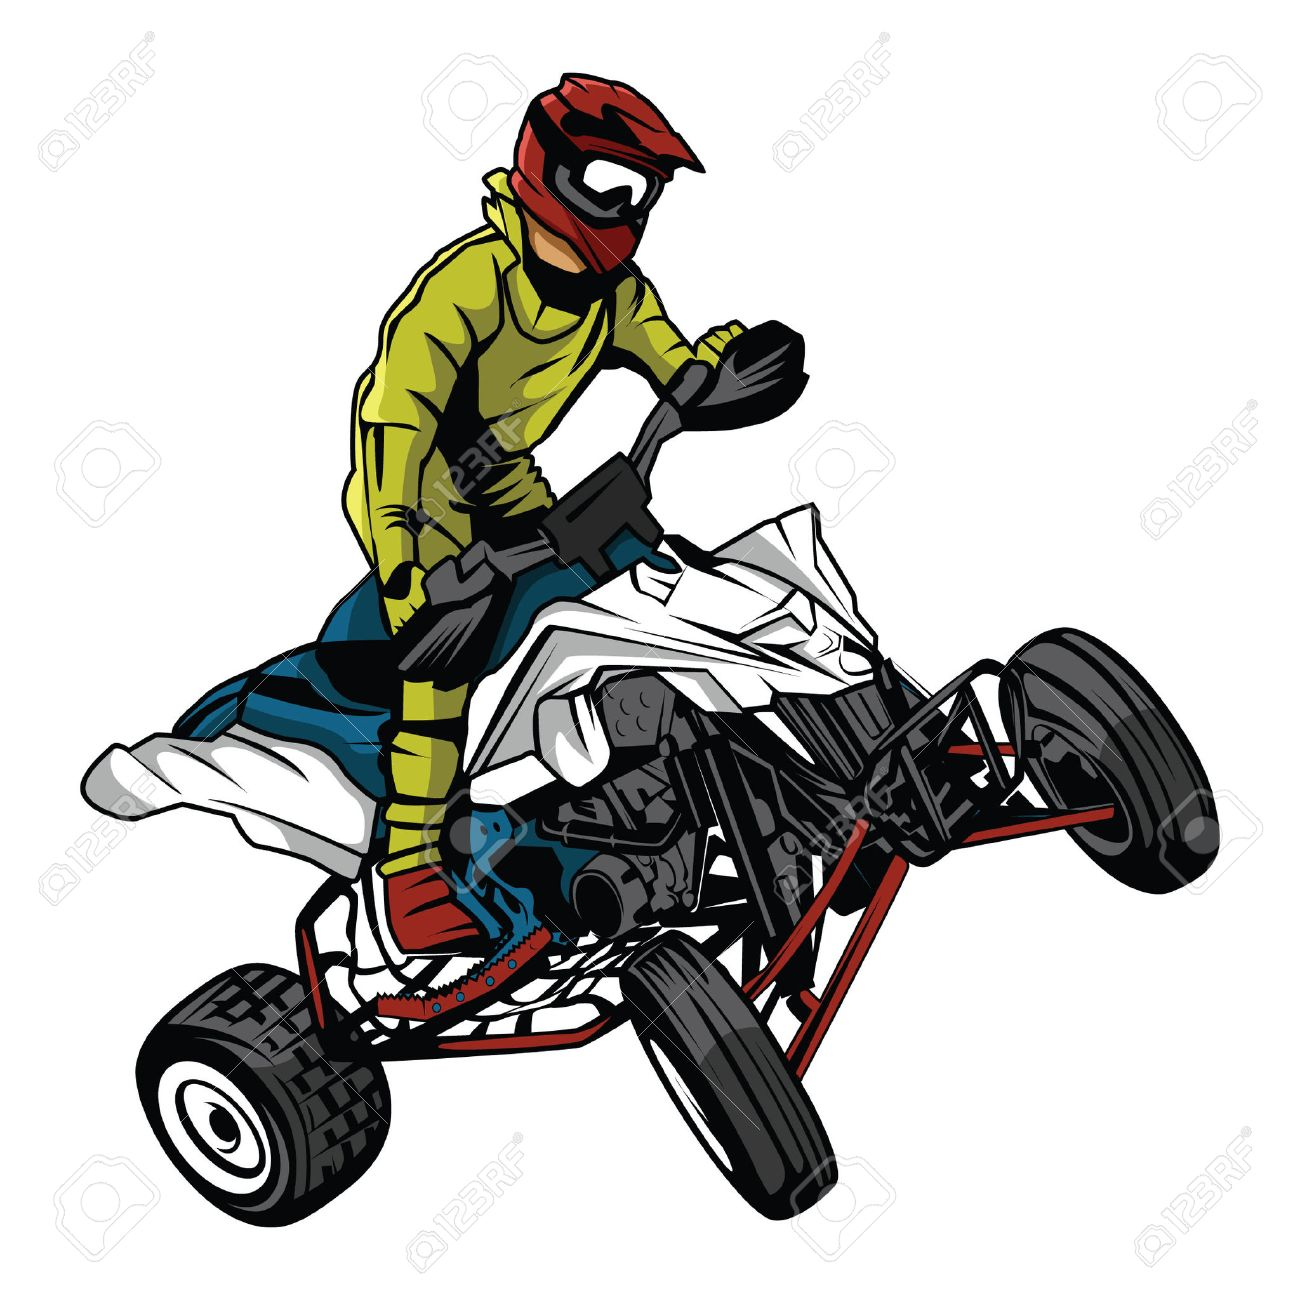 1 347 atv stock illustrations cliparts and royalty free atv vectors rh 123rf com free clipart atv atv cartoon clip art